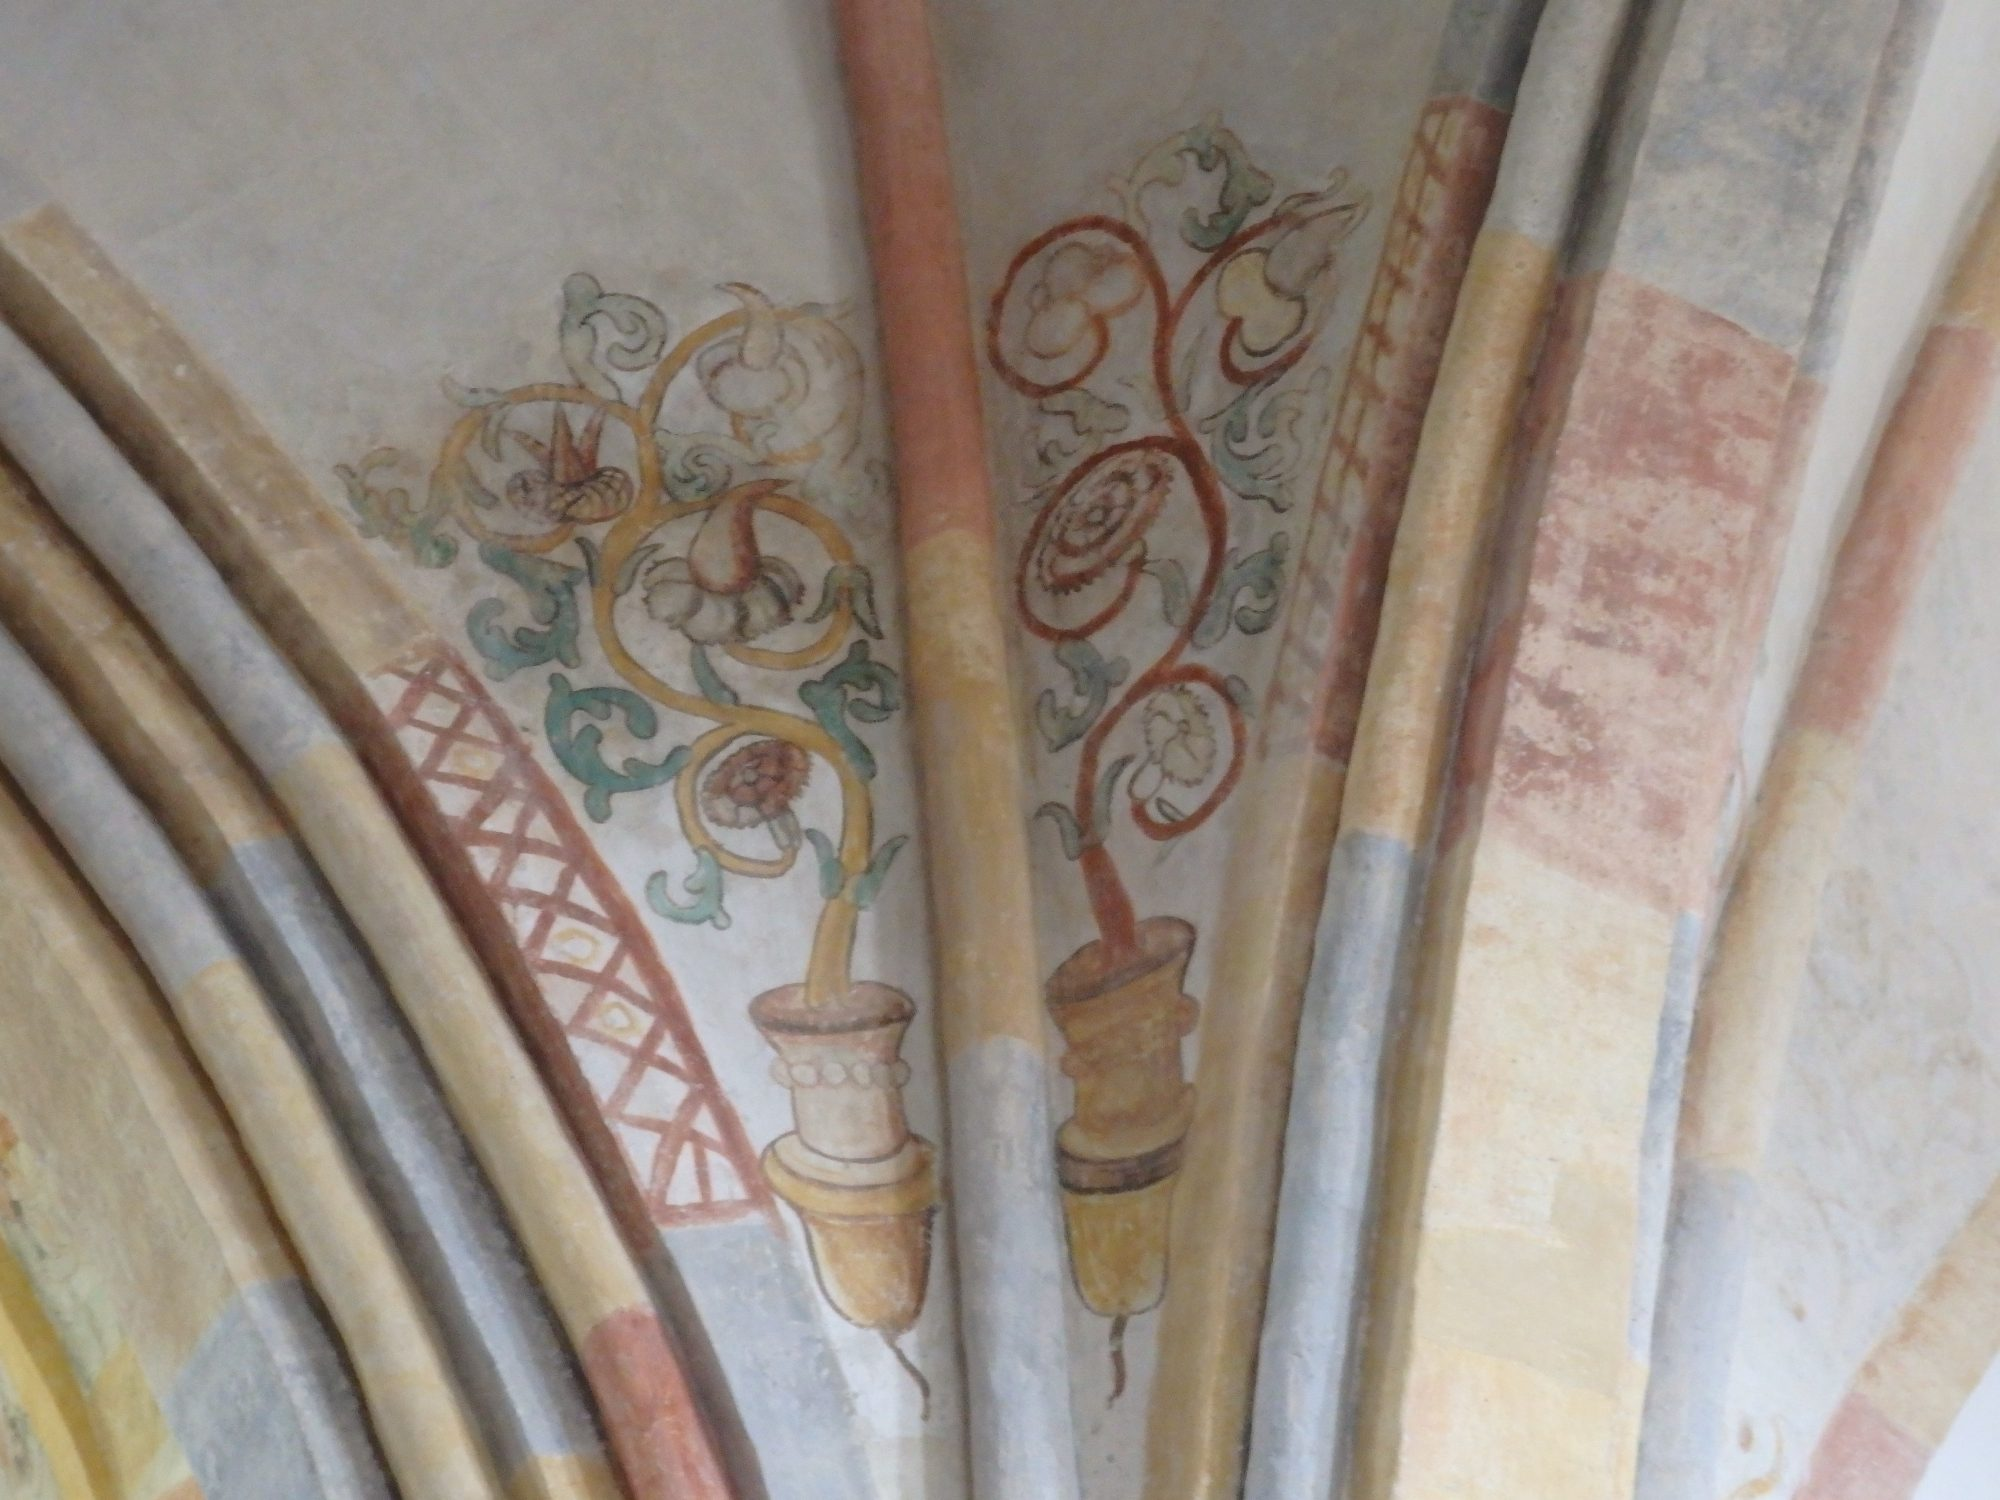 a remnant of a fresco in Garmerwolde church in Groningen province